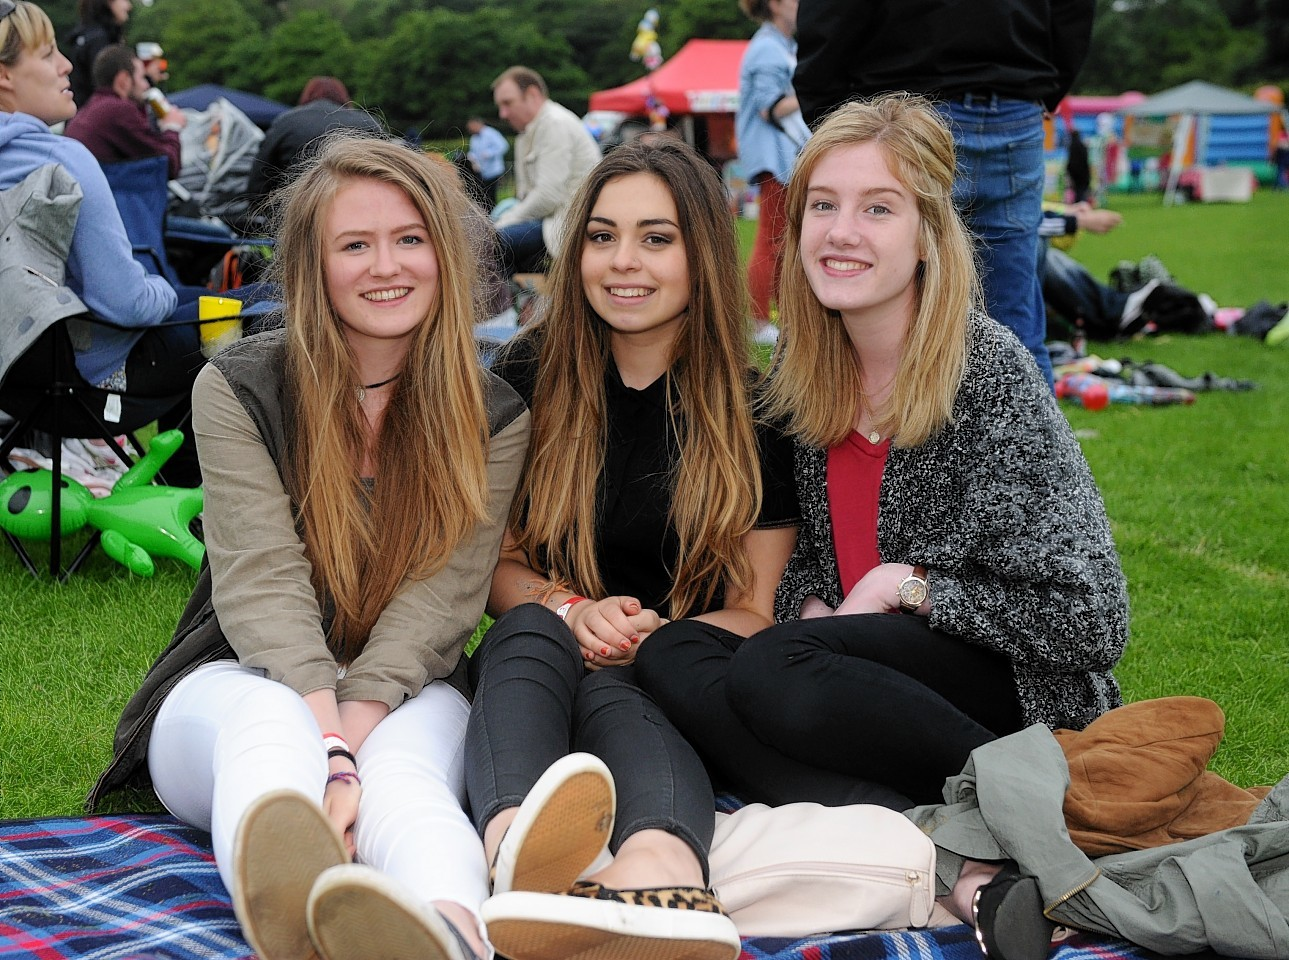 Sophie Georgin, Maia Giles and Lucy Hinchcliffe.